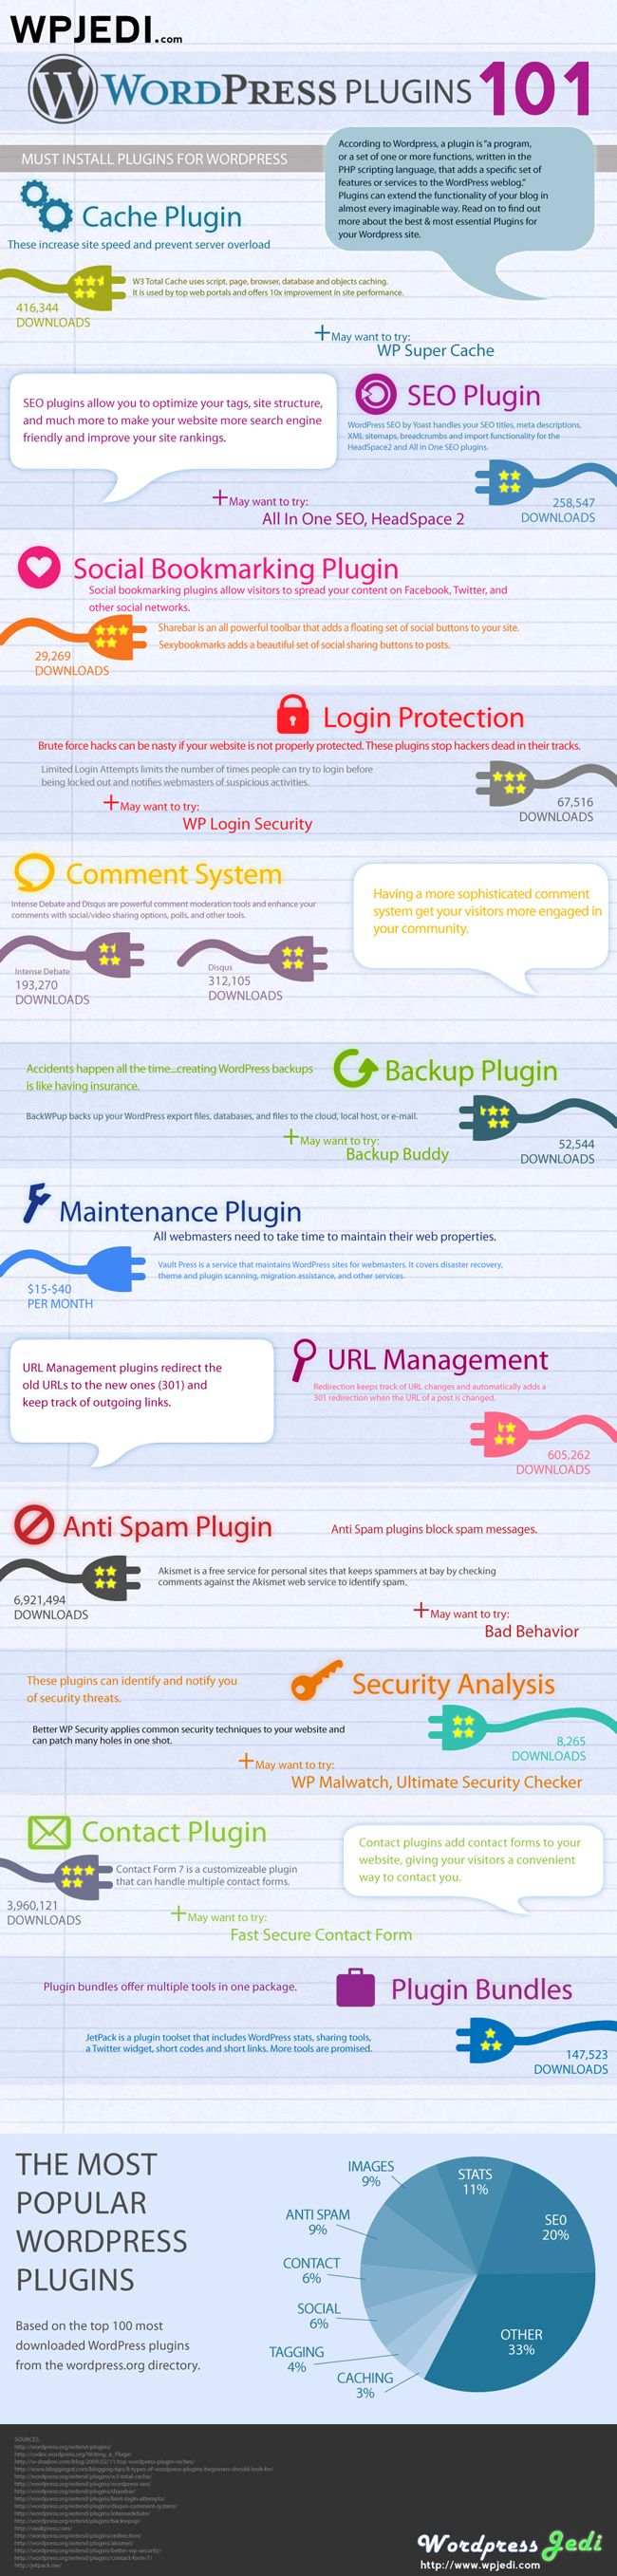 Must Have Wordpress Plugins #infographic.